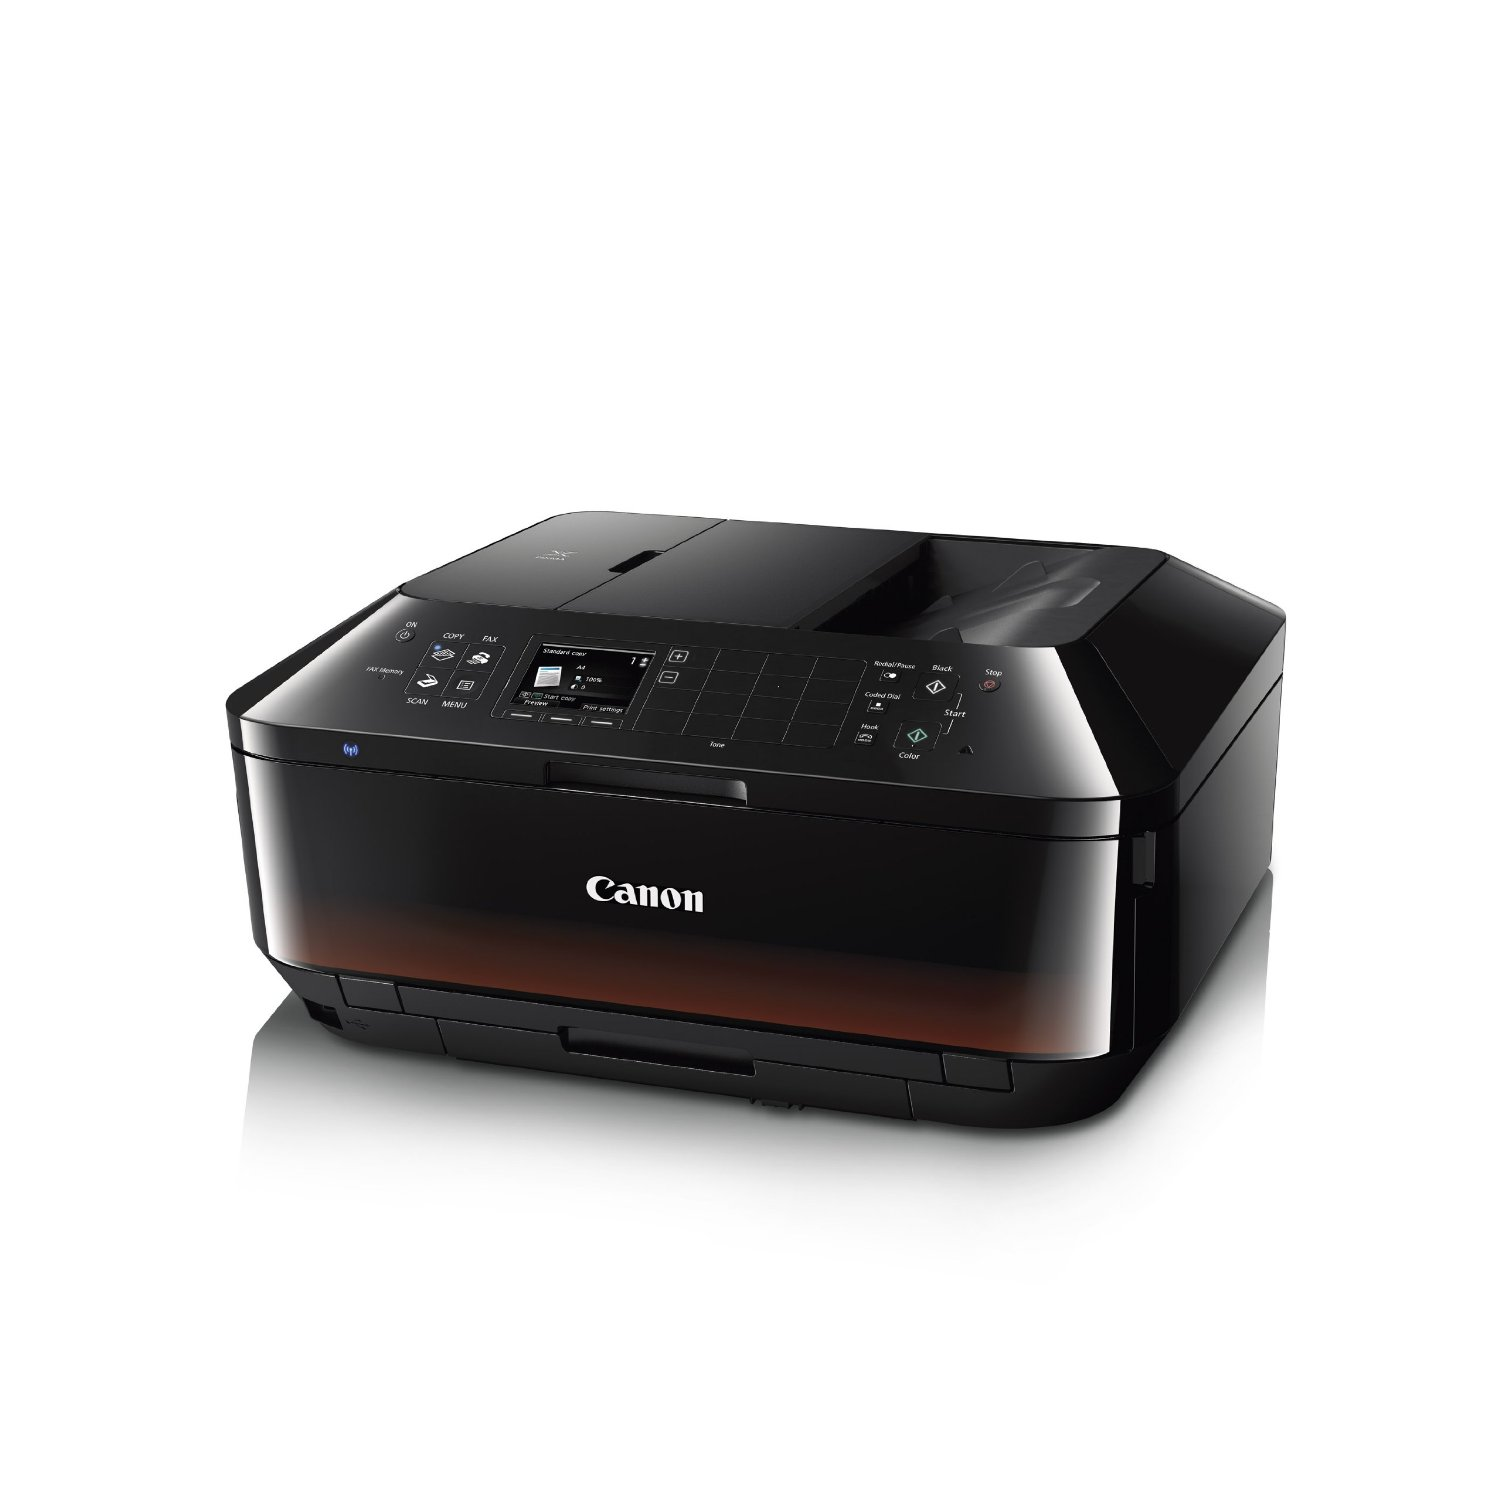 Wireless Printer: Printing From Ipad To Canon Wireless Printer